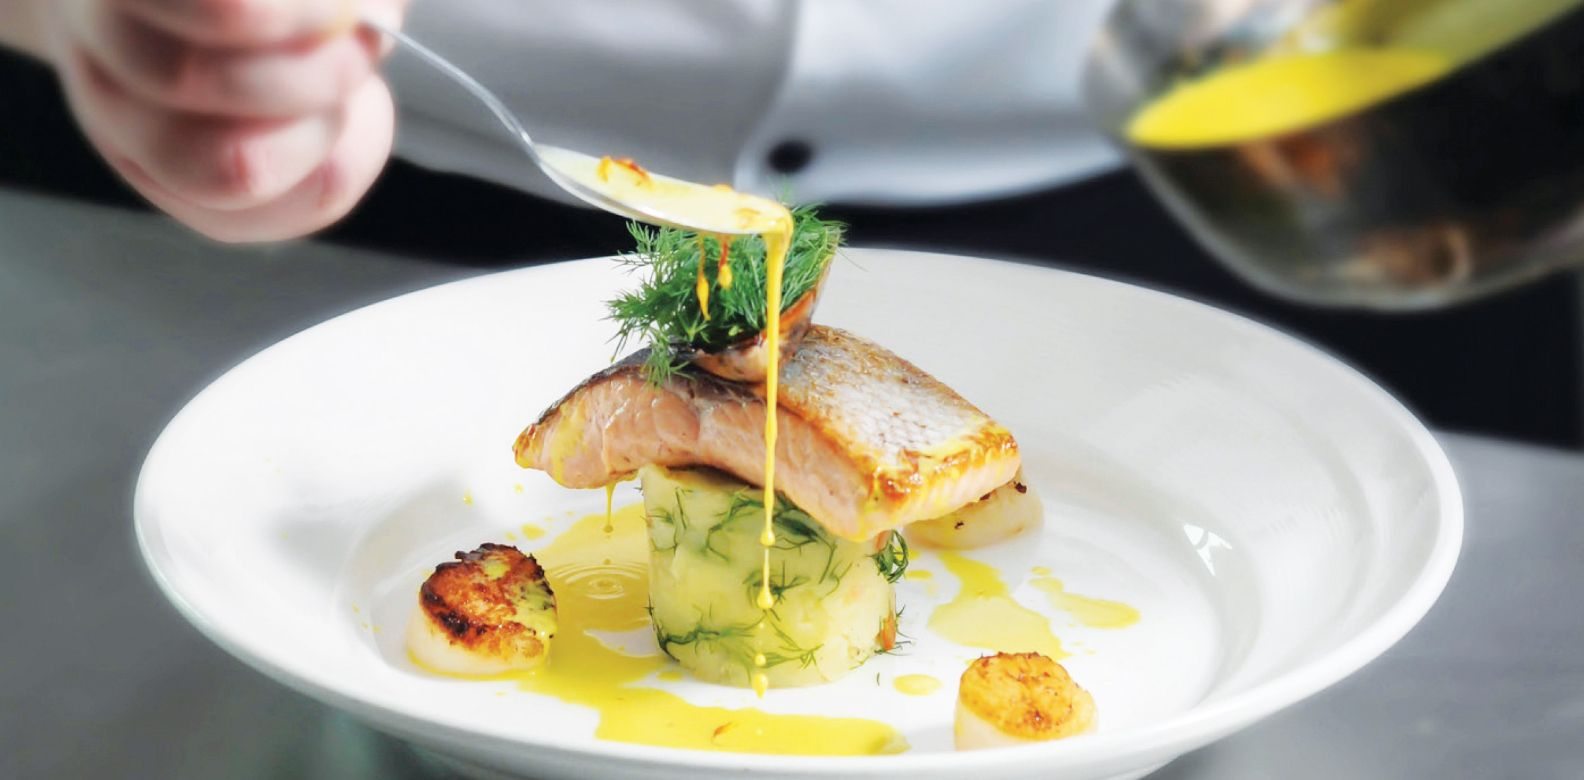 Pan-fried salmon and scallops served with crushed potato